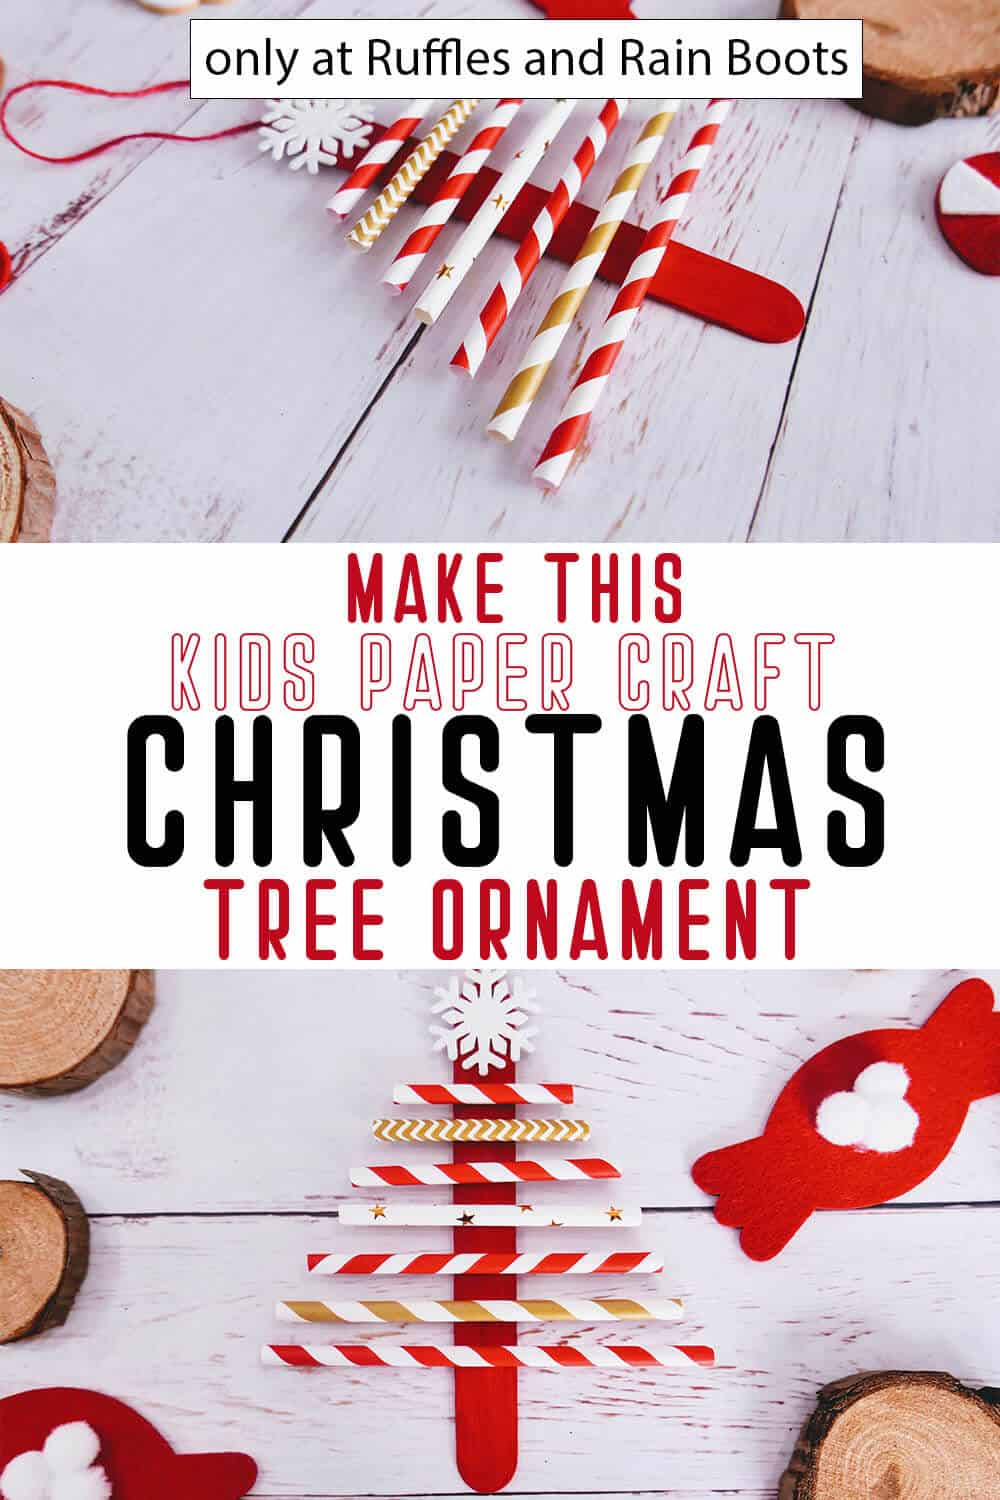 photo collage of kid-made ornament christmas tree from straws with text which reads make this kids paper craft christmas tree ornament